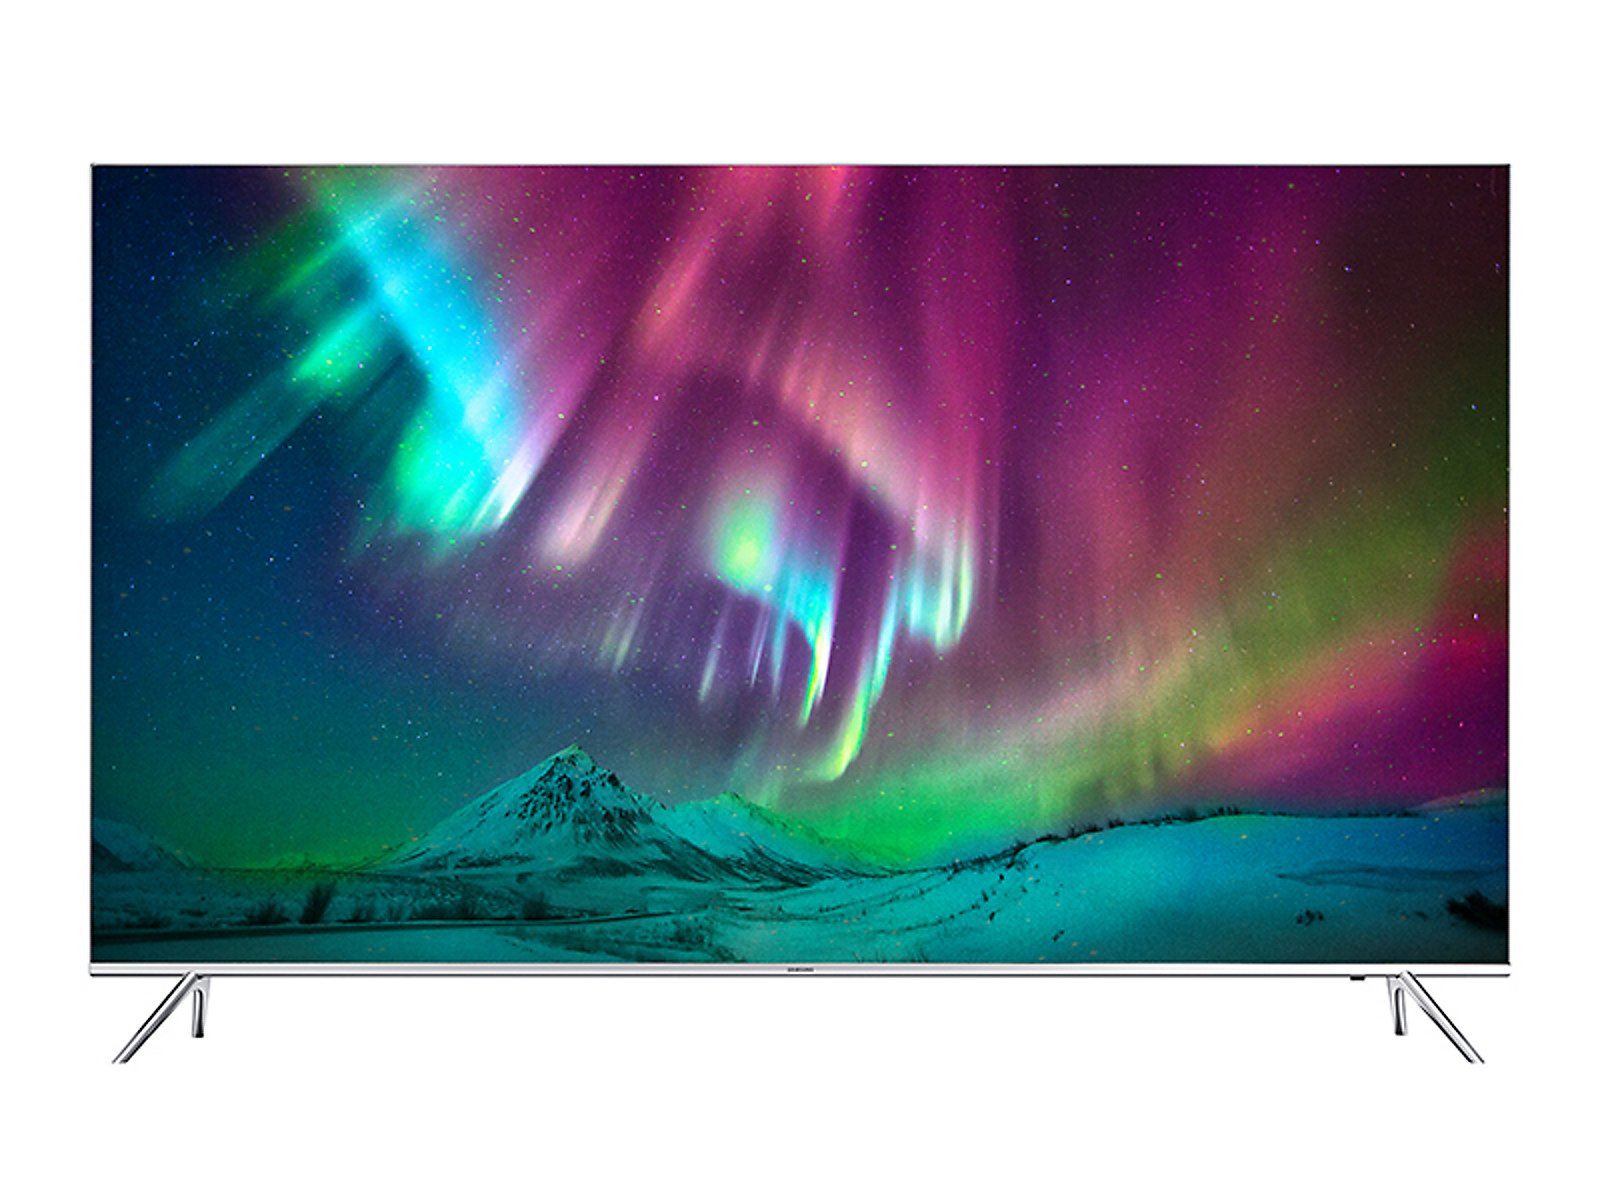 KS8000 Series UHD Dimming SmartTV + WiFi